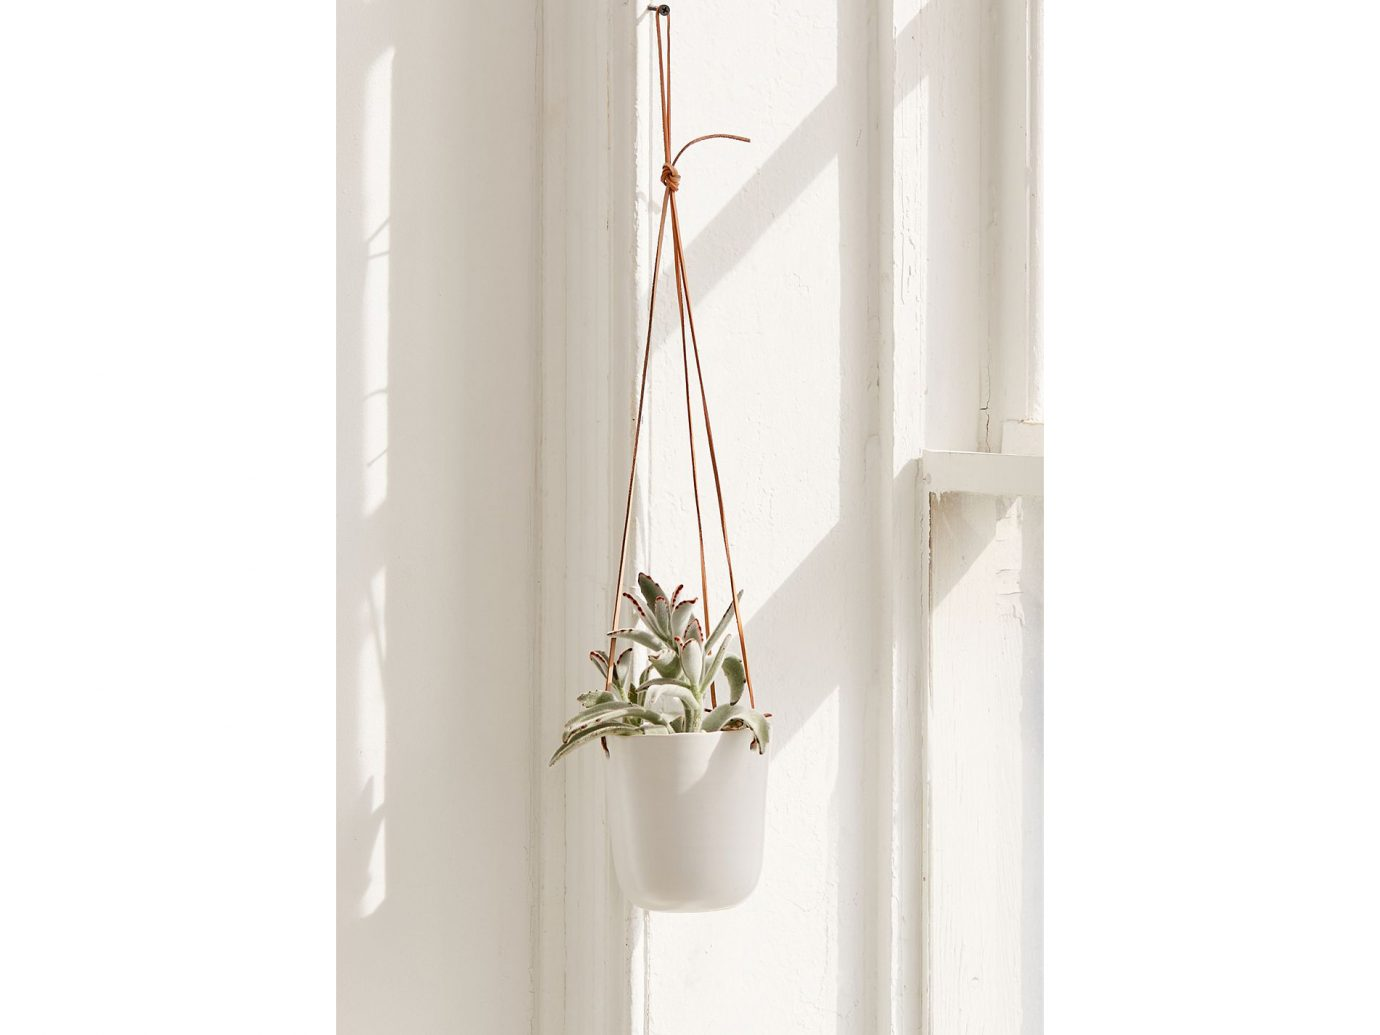 Loren Leather Ceramic Hanging Planter